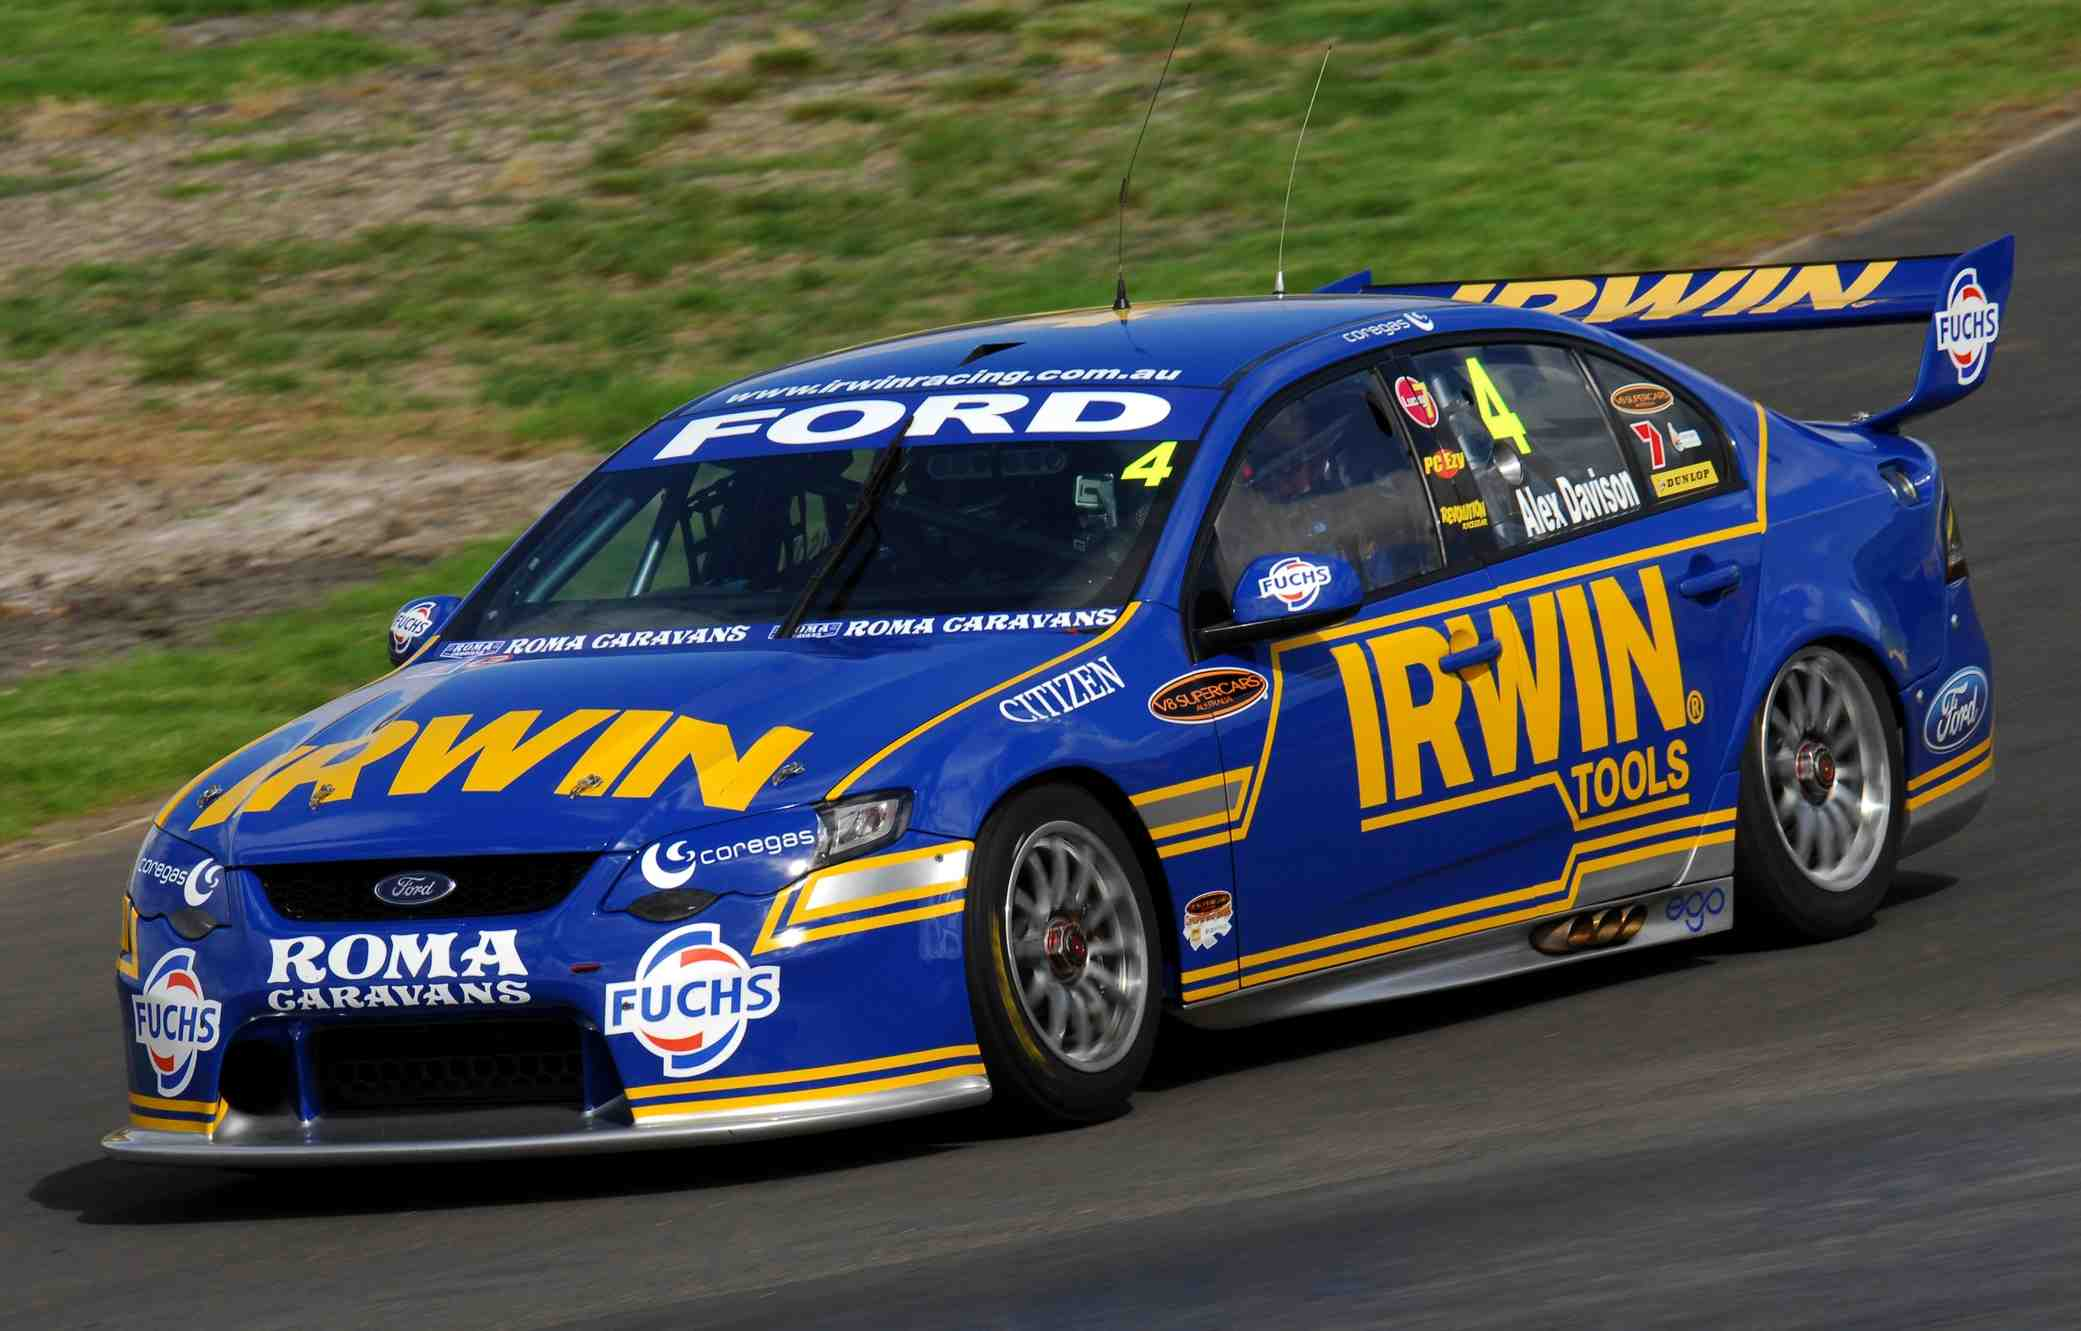 Frosty's former engineer joins IRWIN Racing